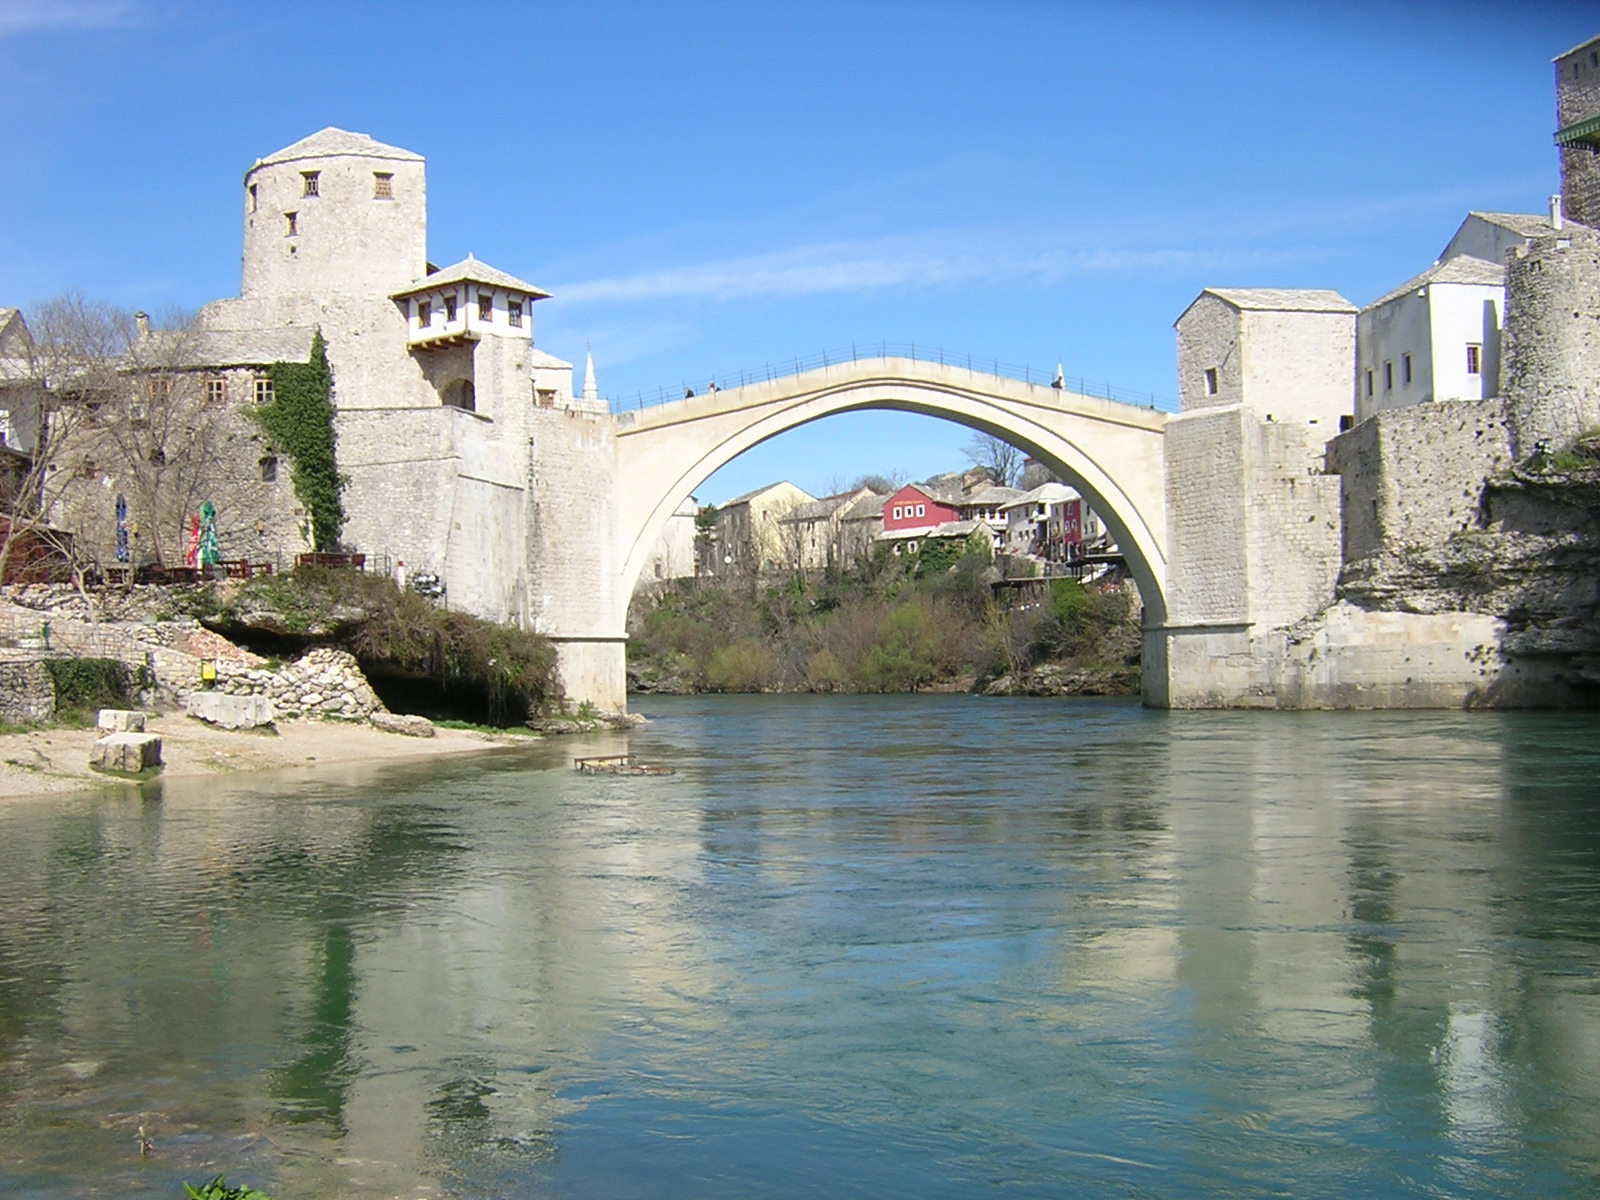 Https Commons Wikimedia Org Wiki File Mostar Stari Most 2008 2 Jpg